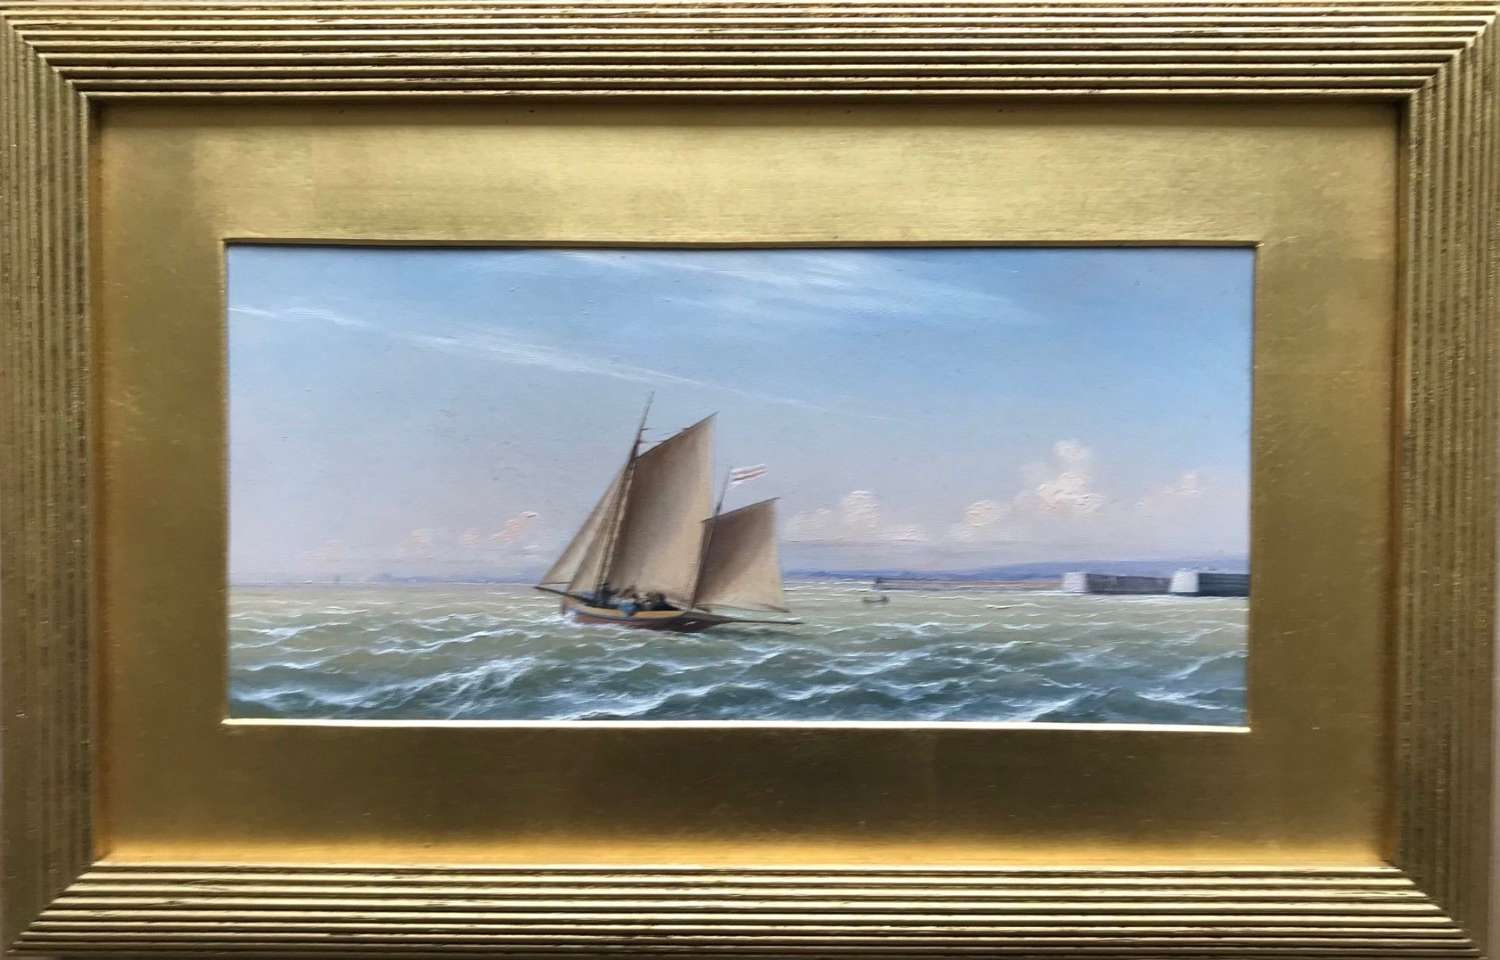 'The sailing yacht Henrietta' an oil painting by I.W.Jenner dated 1872